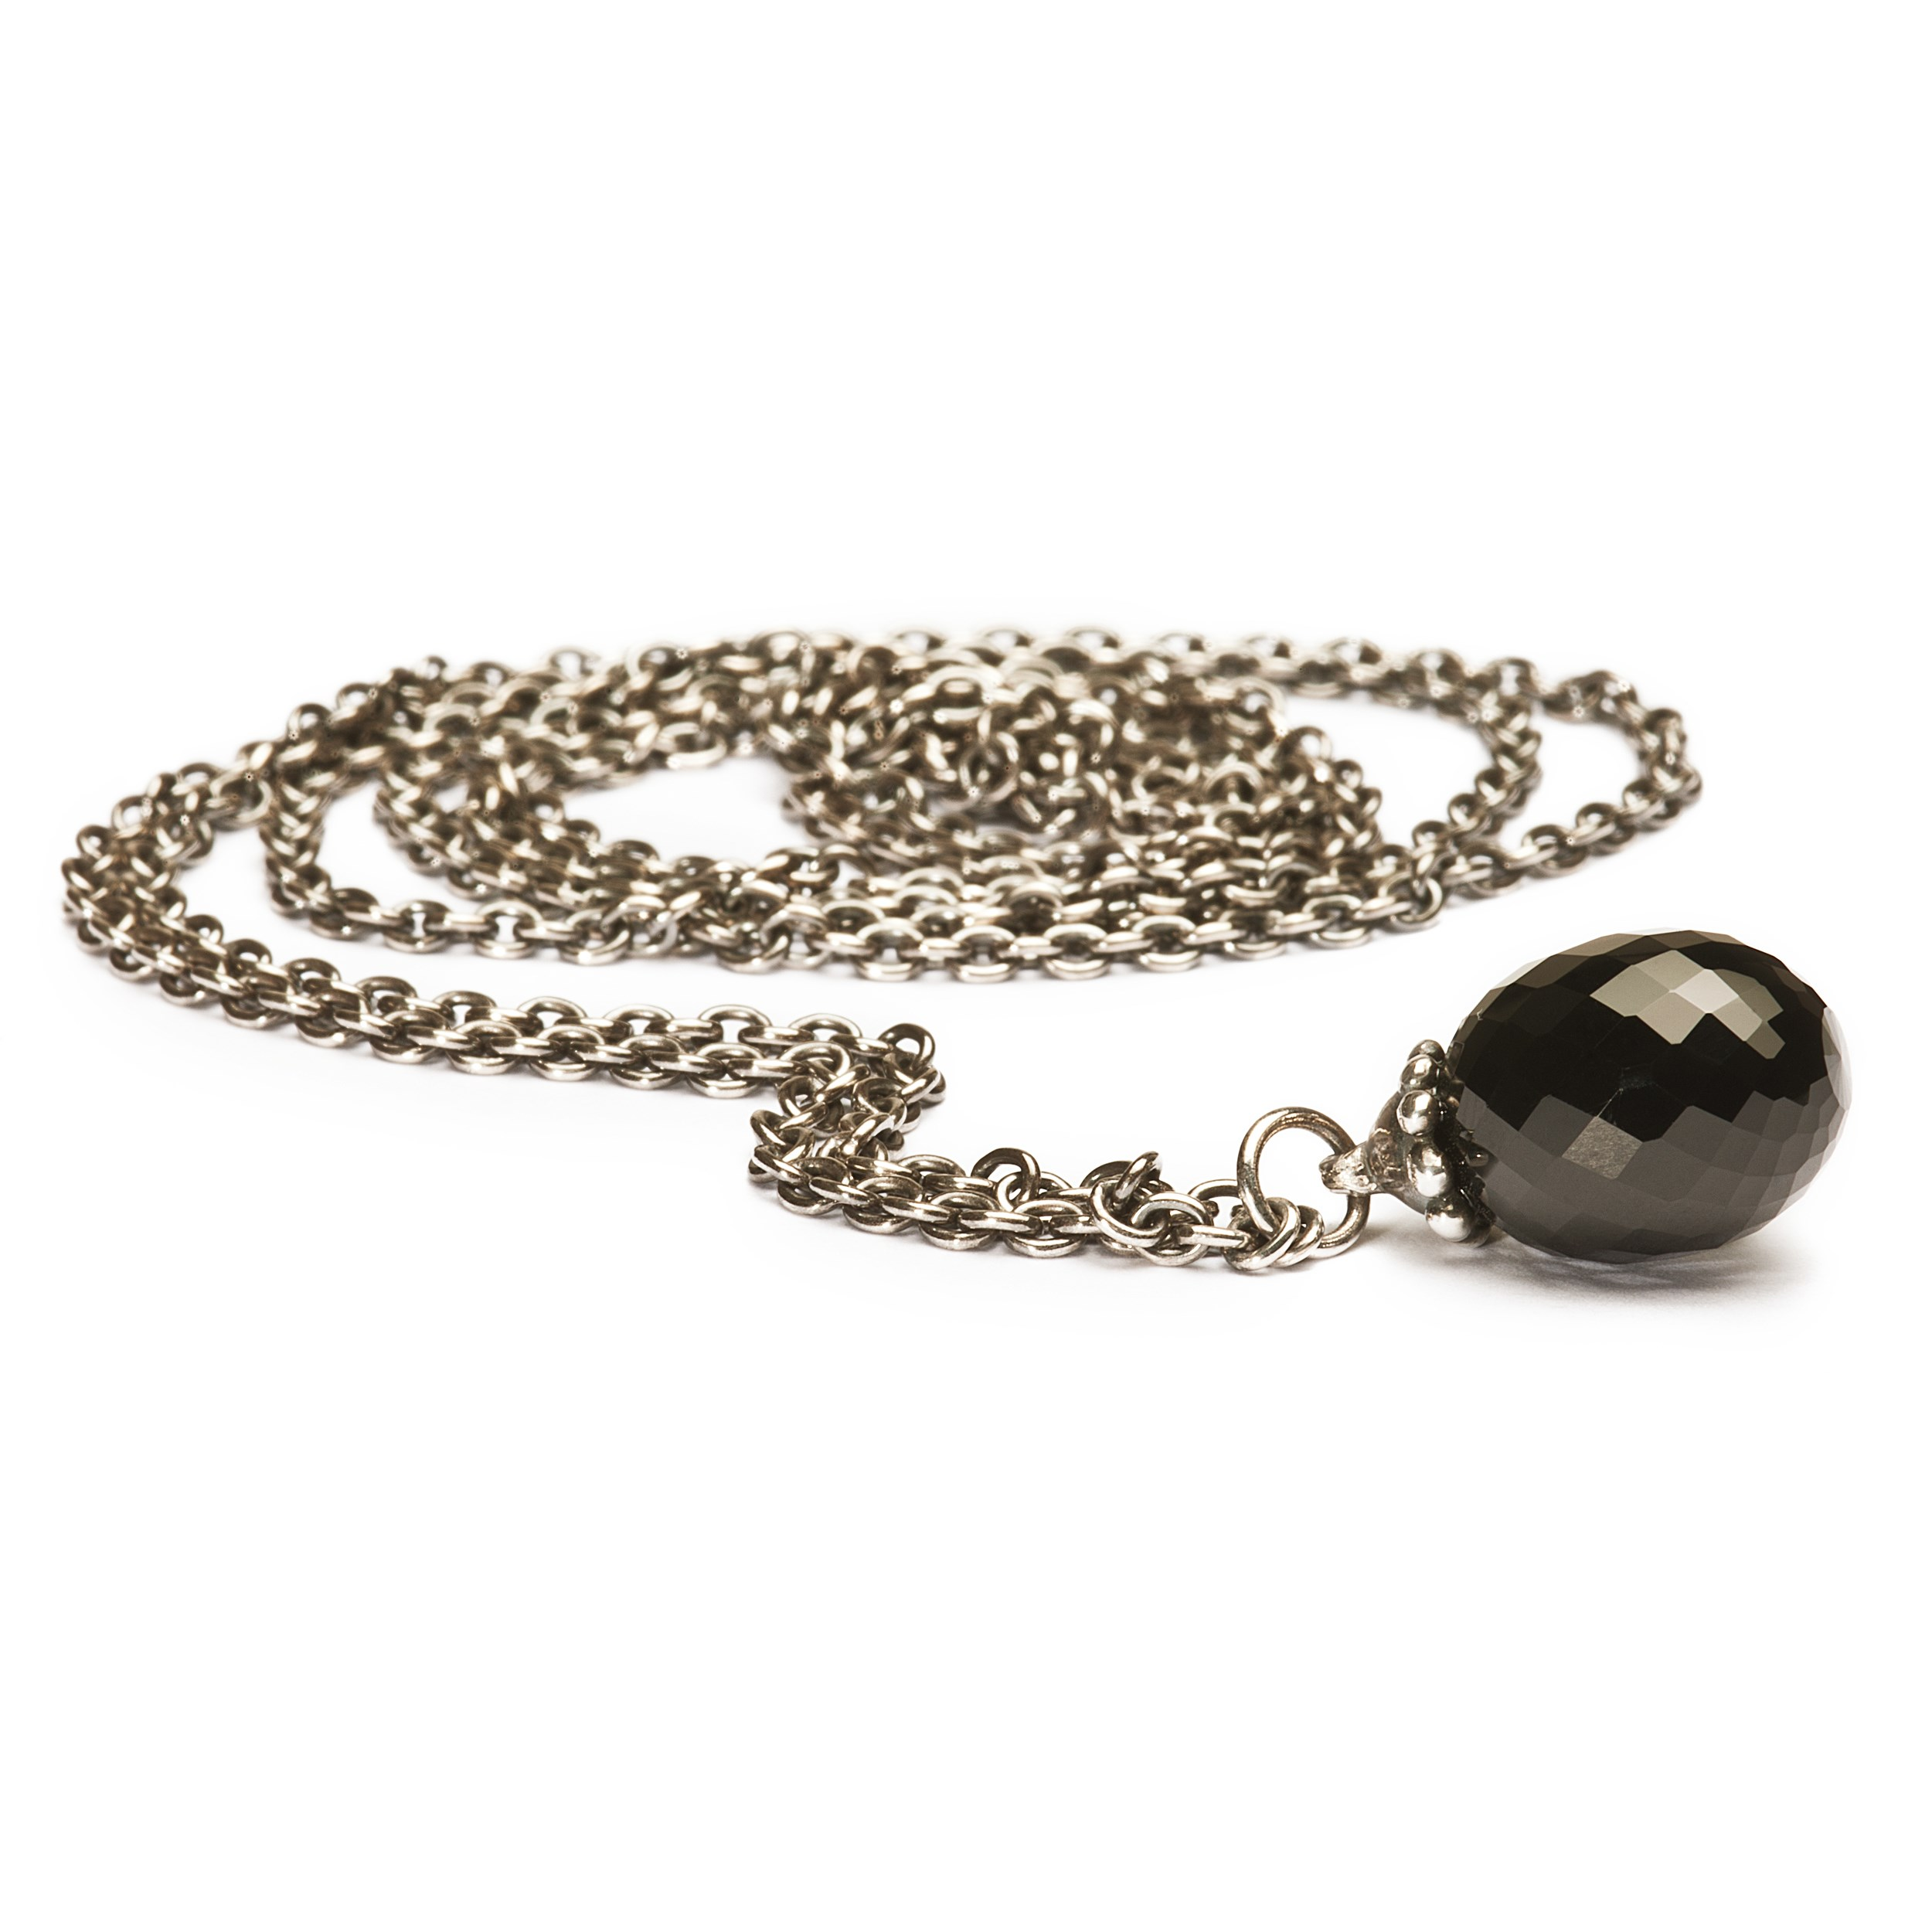 products gemstone table onyx white necklace on displayed gemisphere jewelry jewellery therapeutic